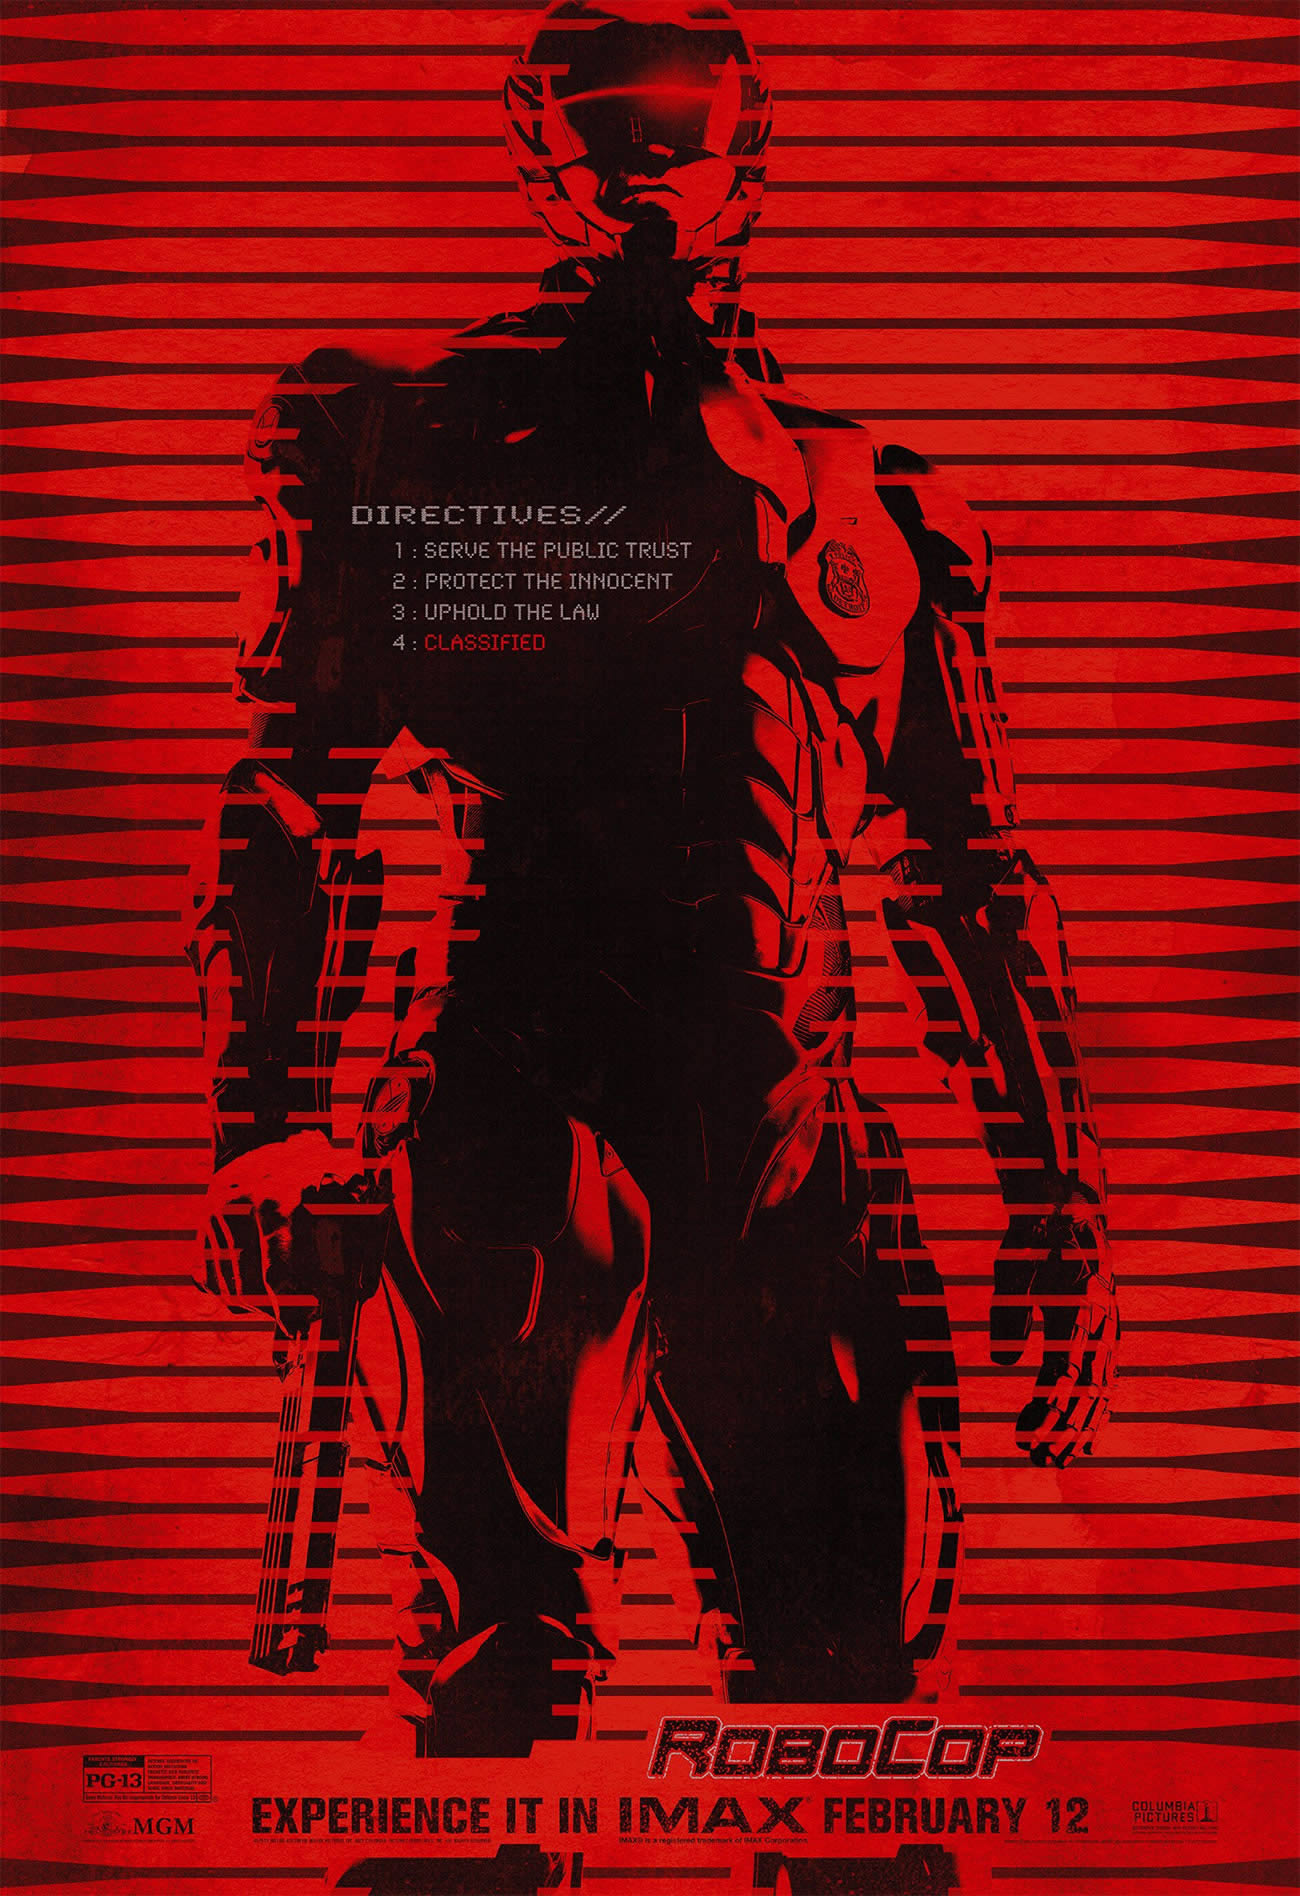 robocop, stencil style poster, imax, red